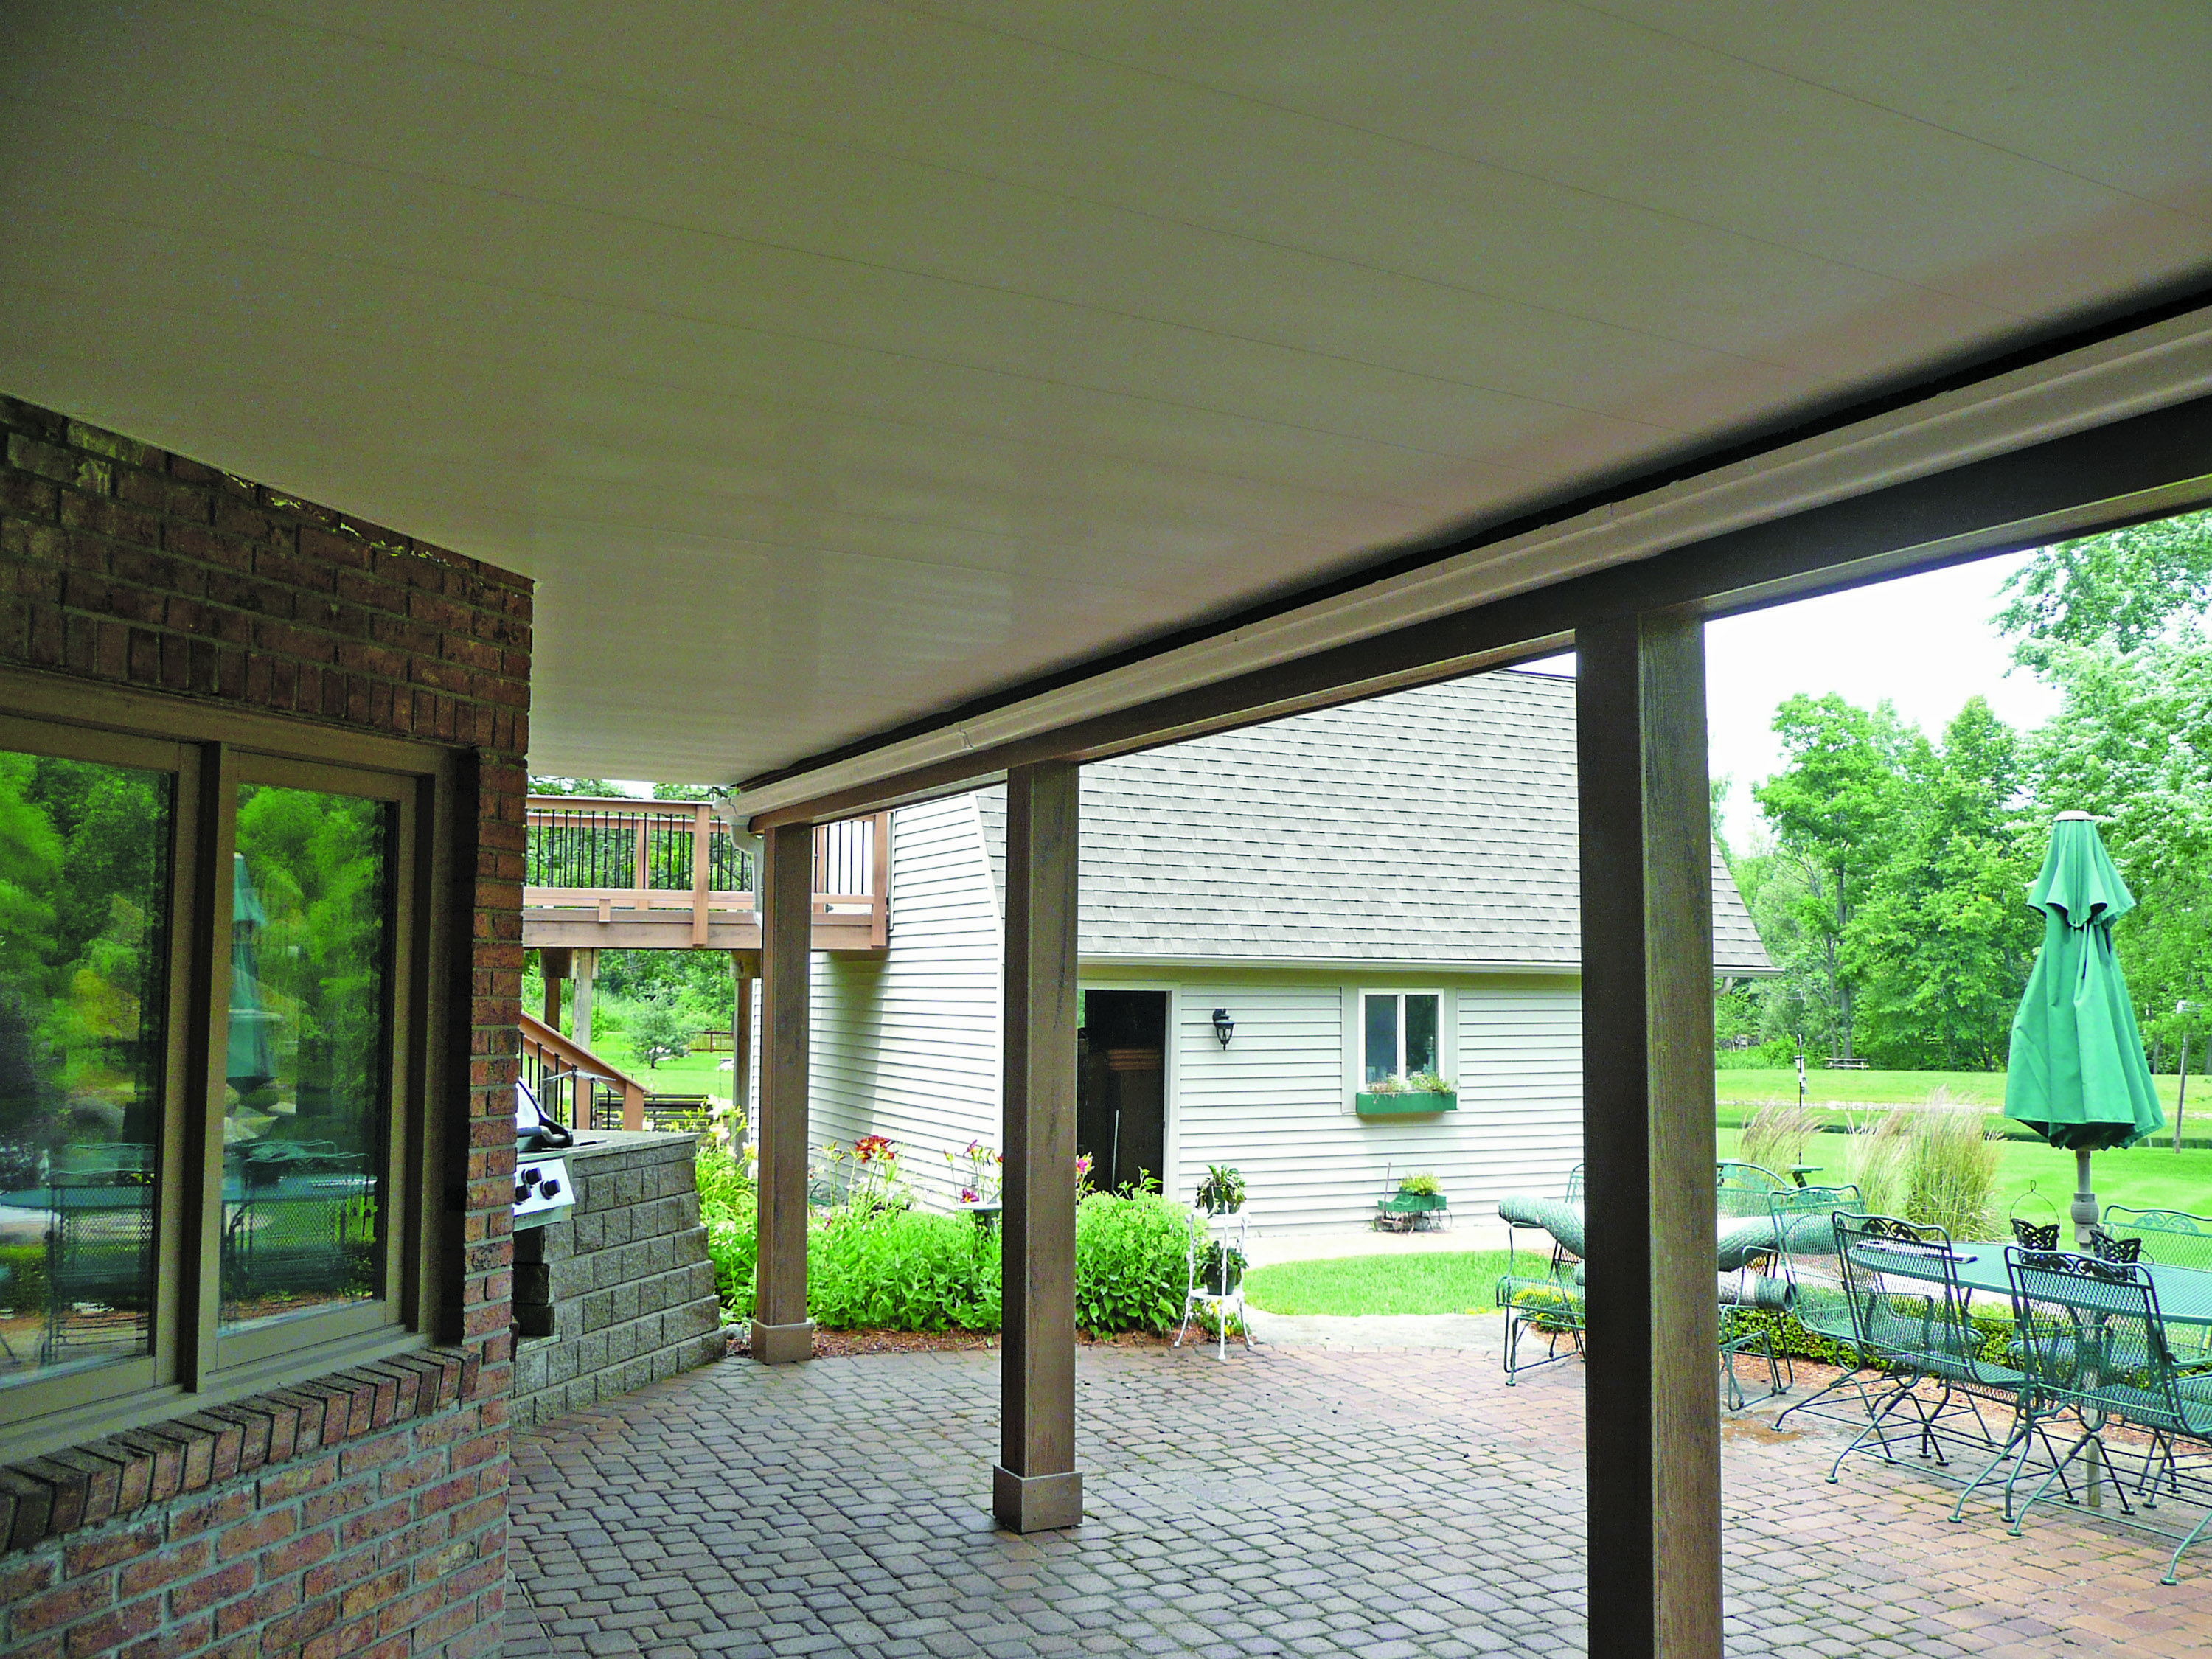 Zip Up Underdeck Installs Quickly And Easily Using Just 5 Components Transforms Under Utilized Area Ranch House Exterior Exterior House Remodel Decks Backyard